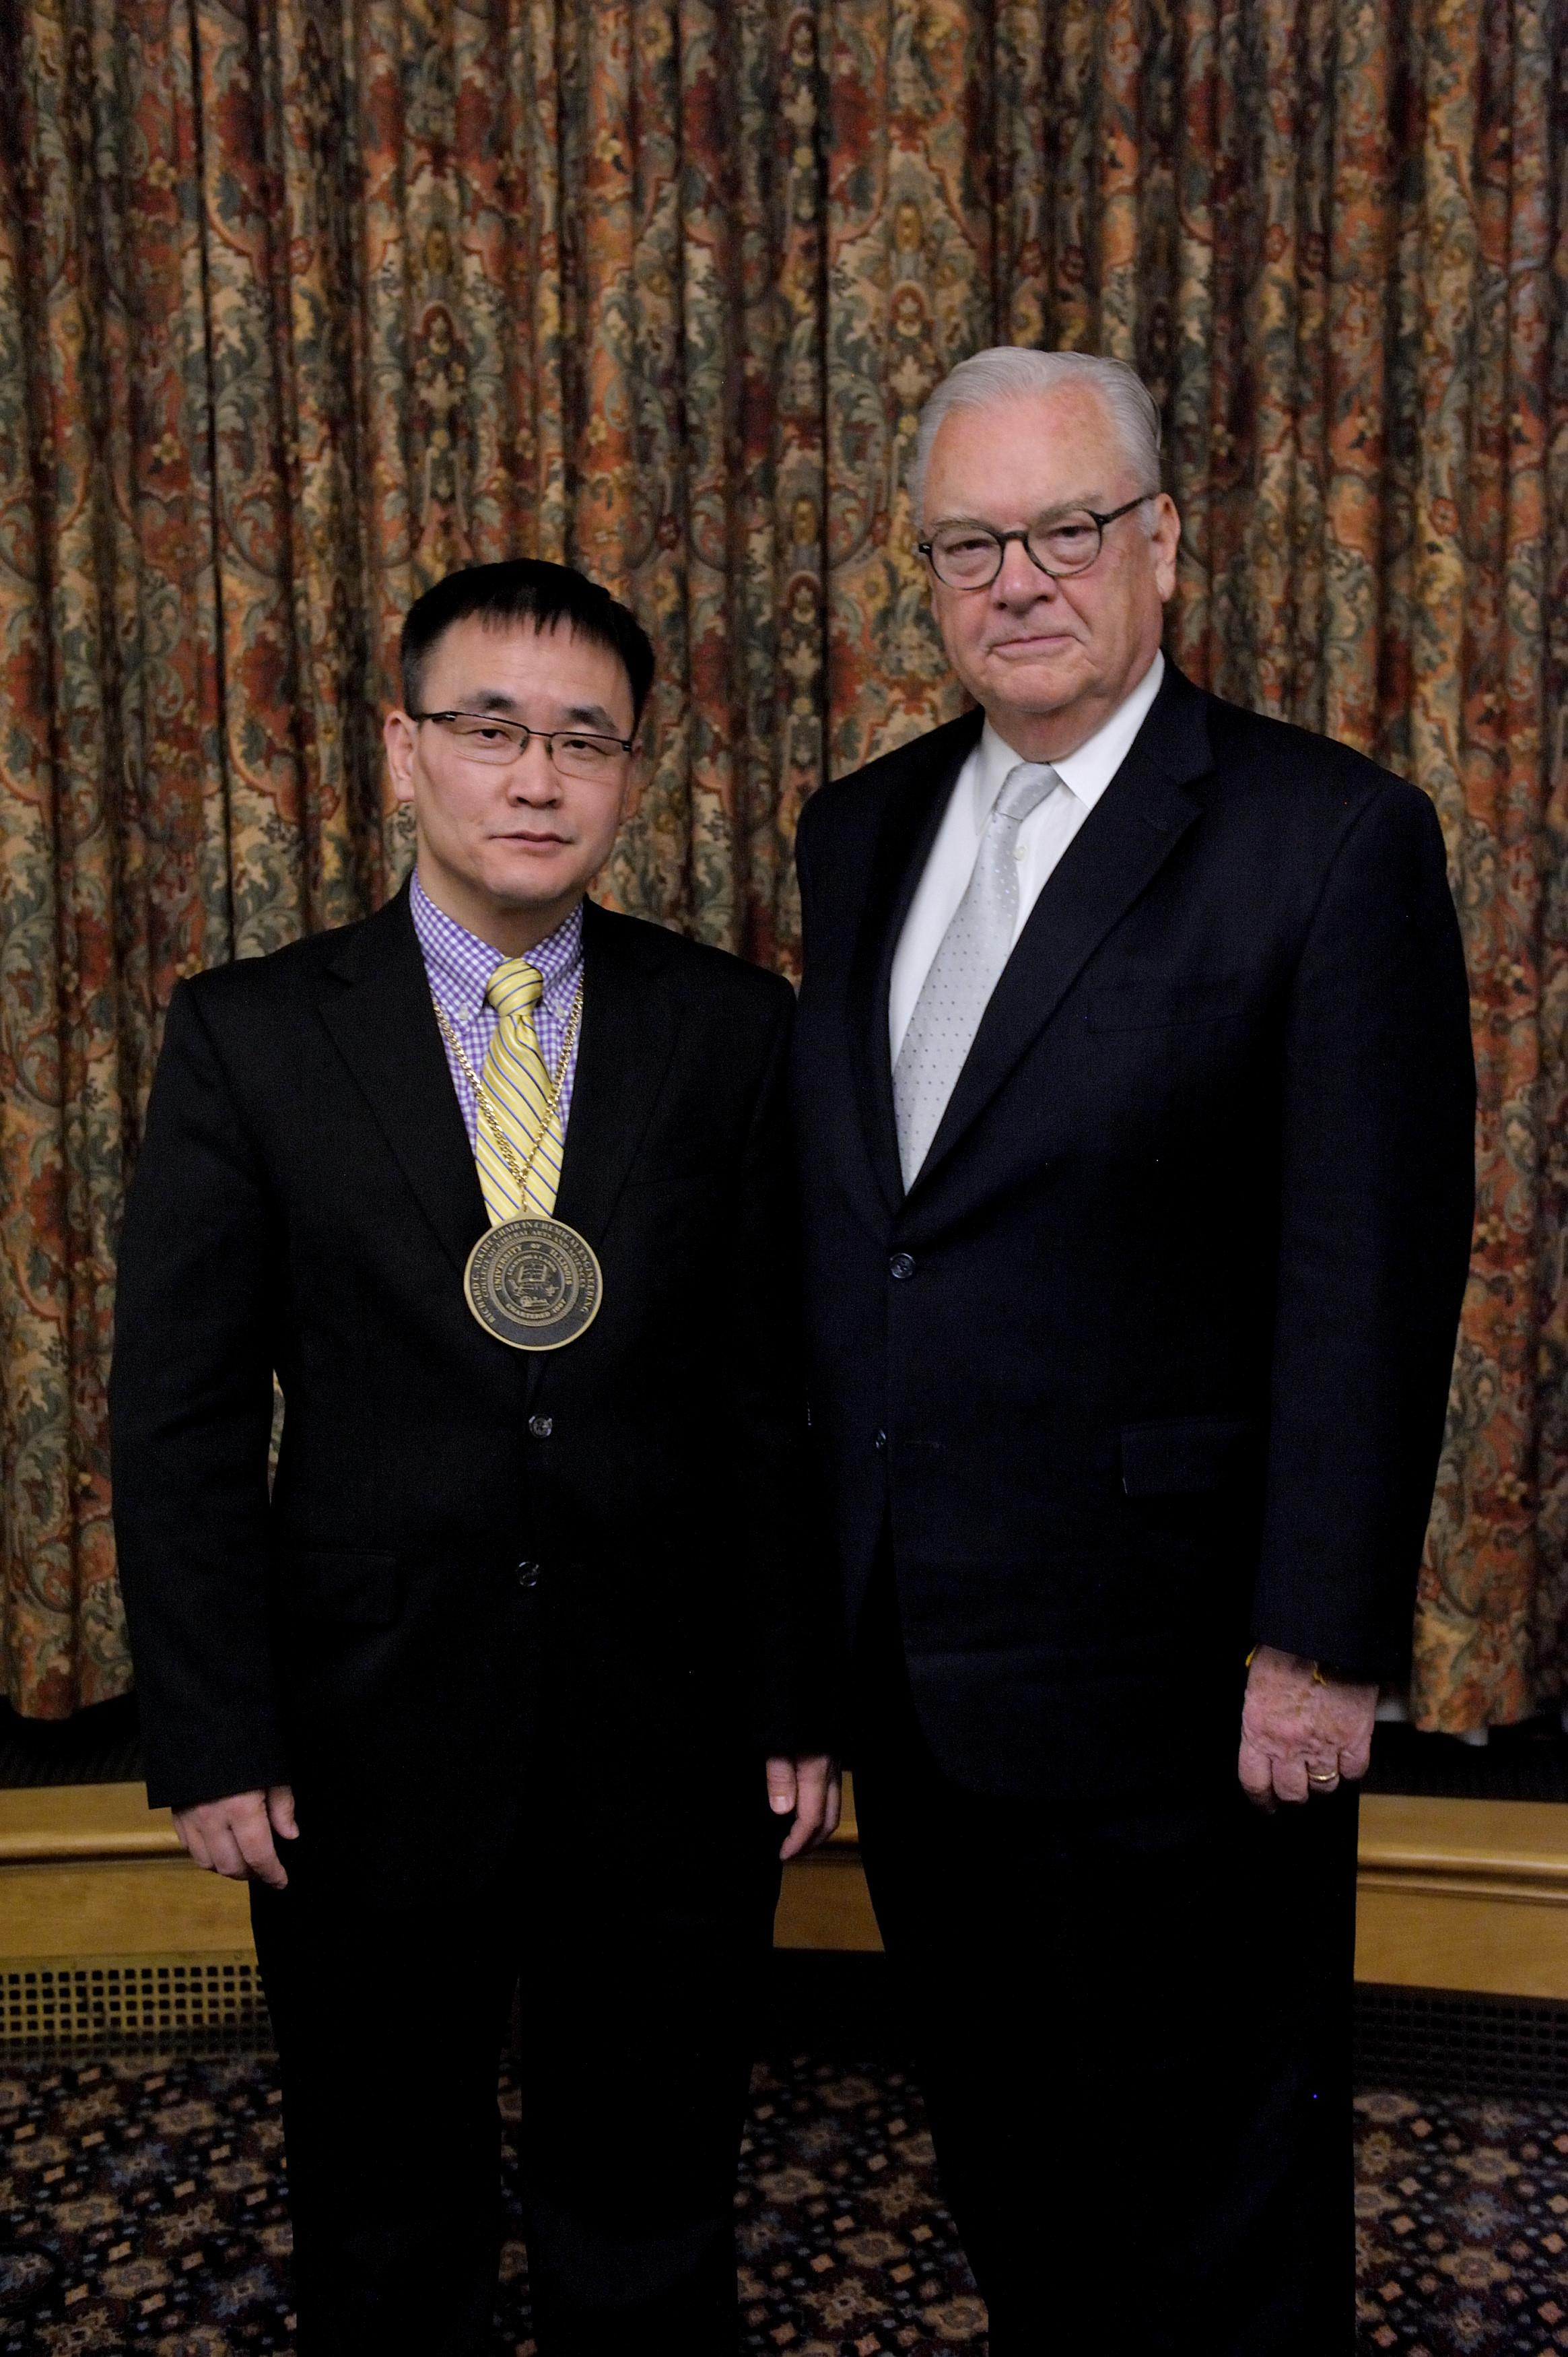 Hong Yang, left, and Richard Alkire pose for a photo after Yang was formally named the Richard C. Alkire Chair in Chemical Engineering. (Thompson-McClellan.)